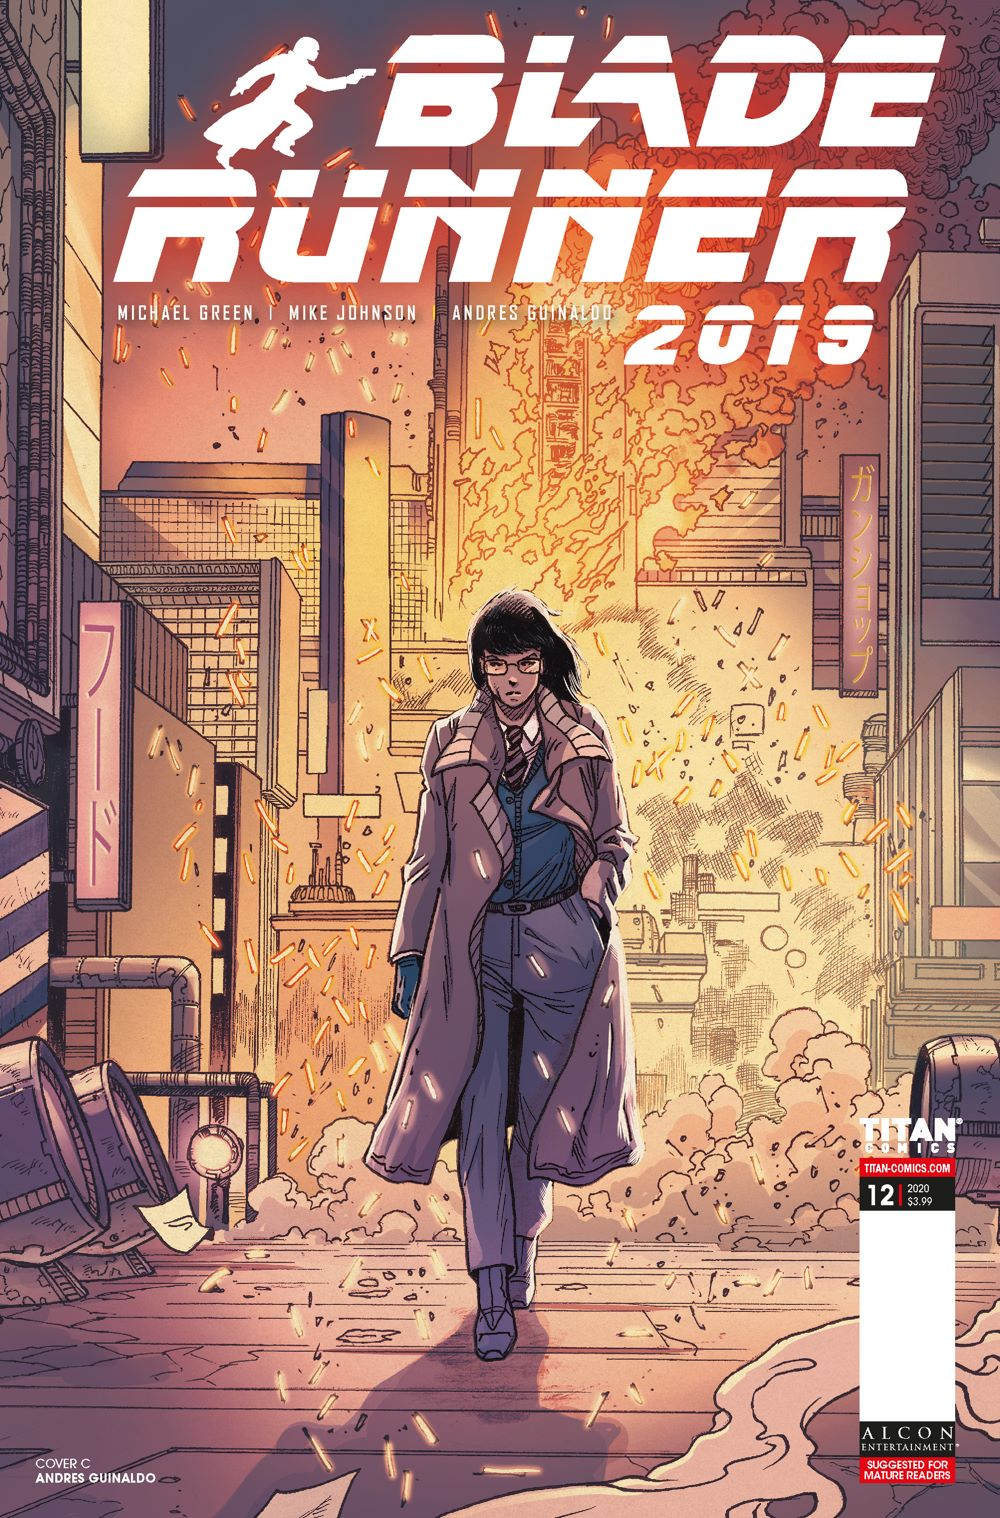 BR12_00_Cover_C ComicList Previews: BLADE RUNNER 2019 #12